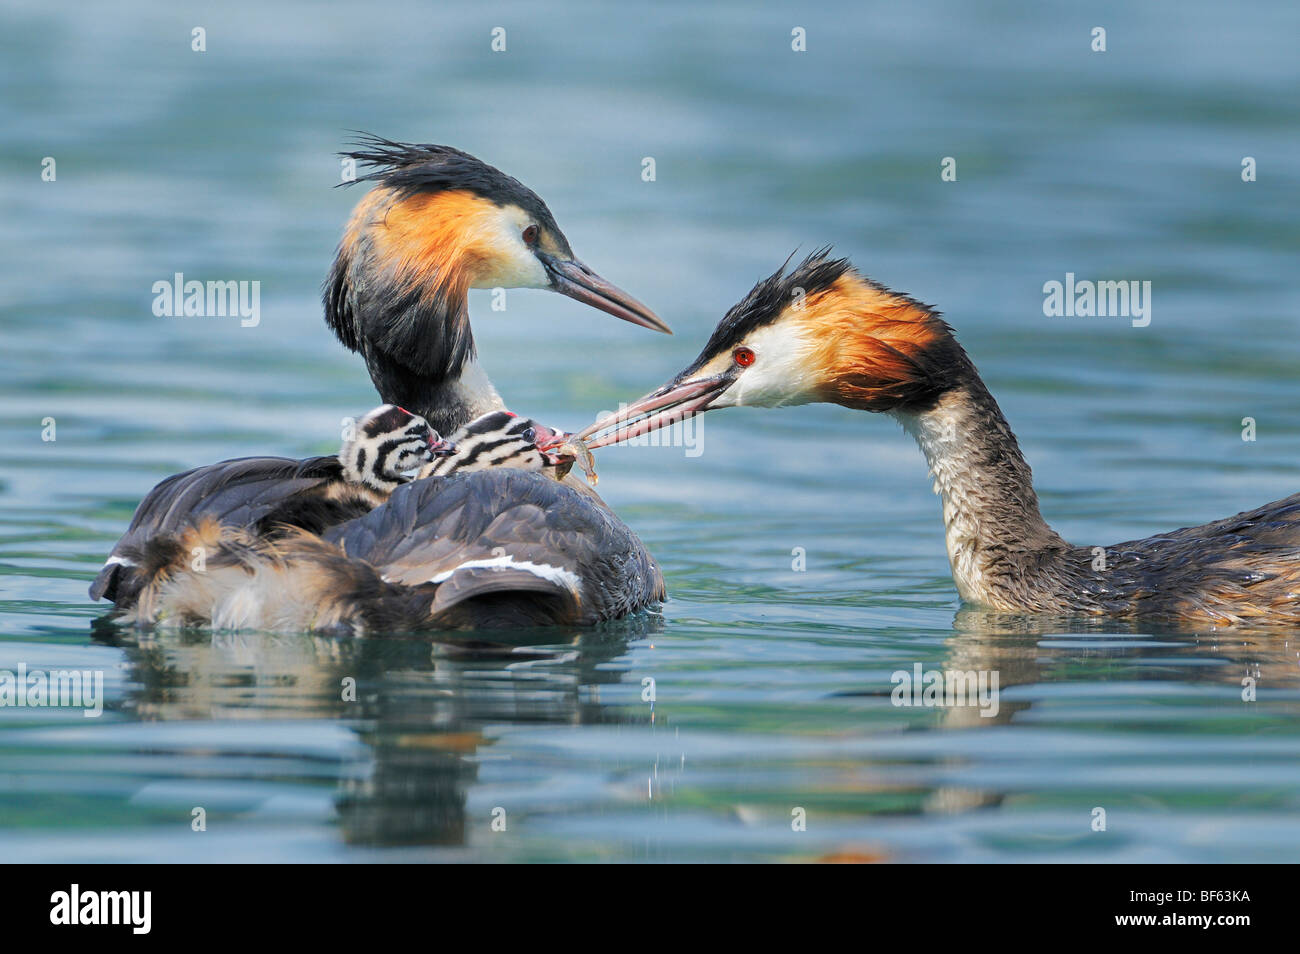 Great-crested Grebe (Podiceps cristatus), adult with young on back, Switzerland, Europe - Stock Image